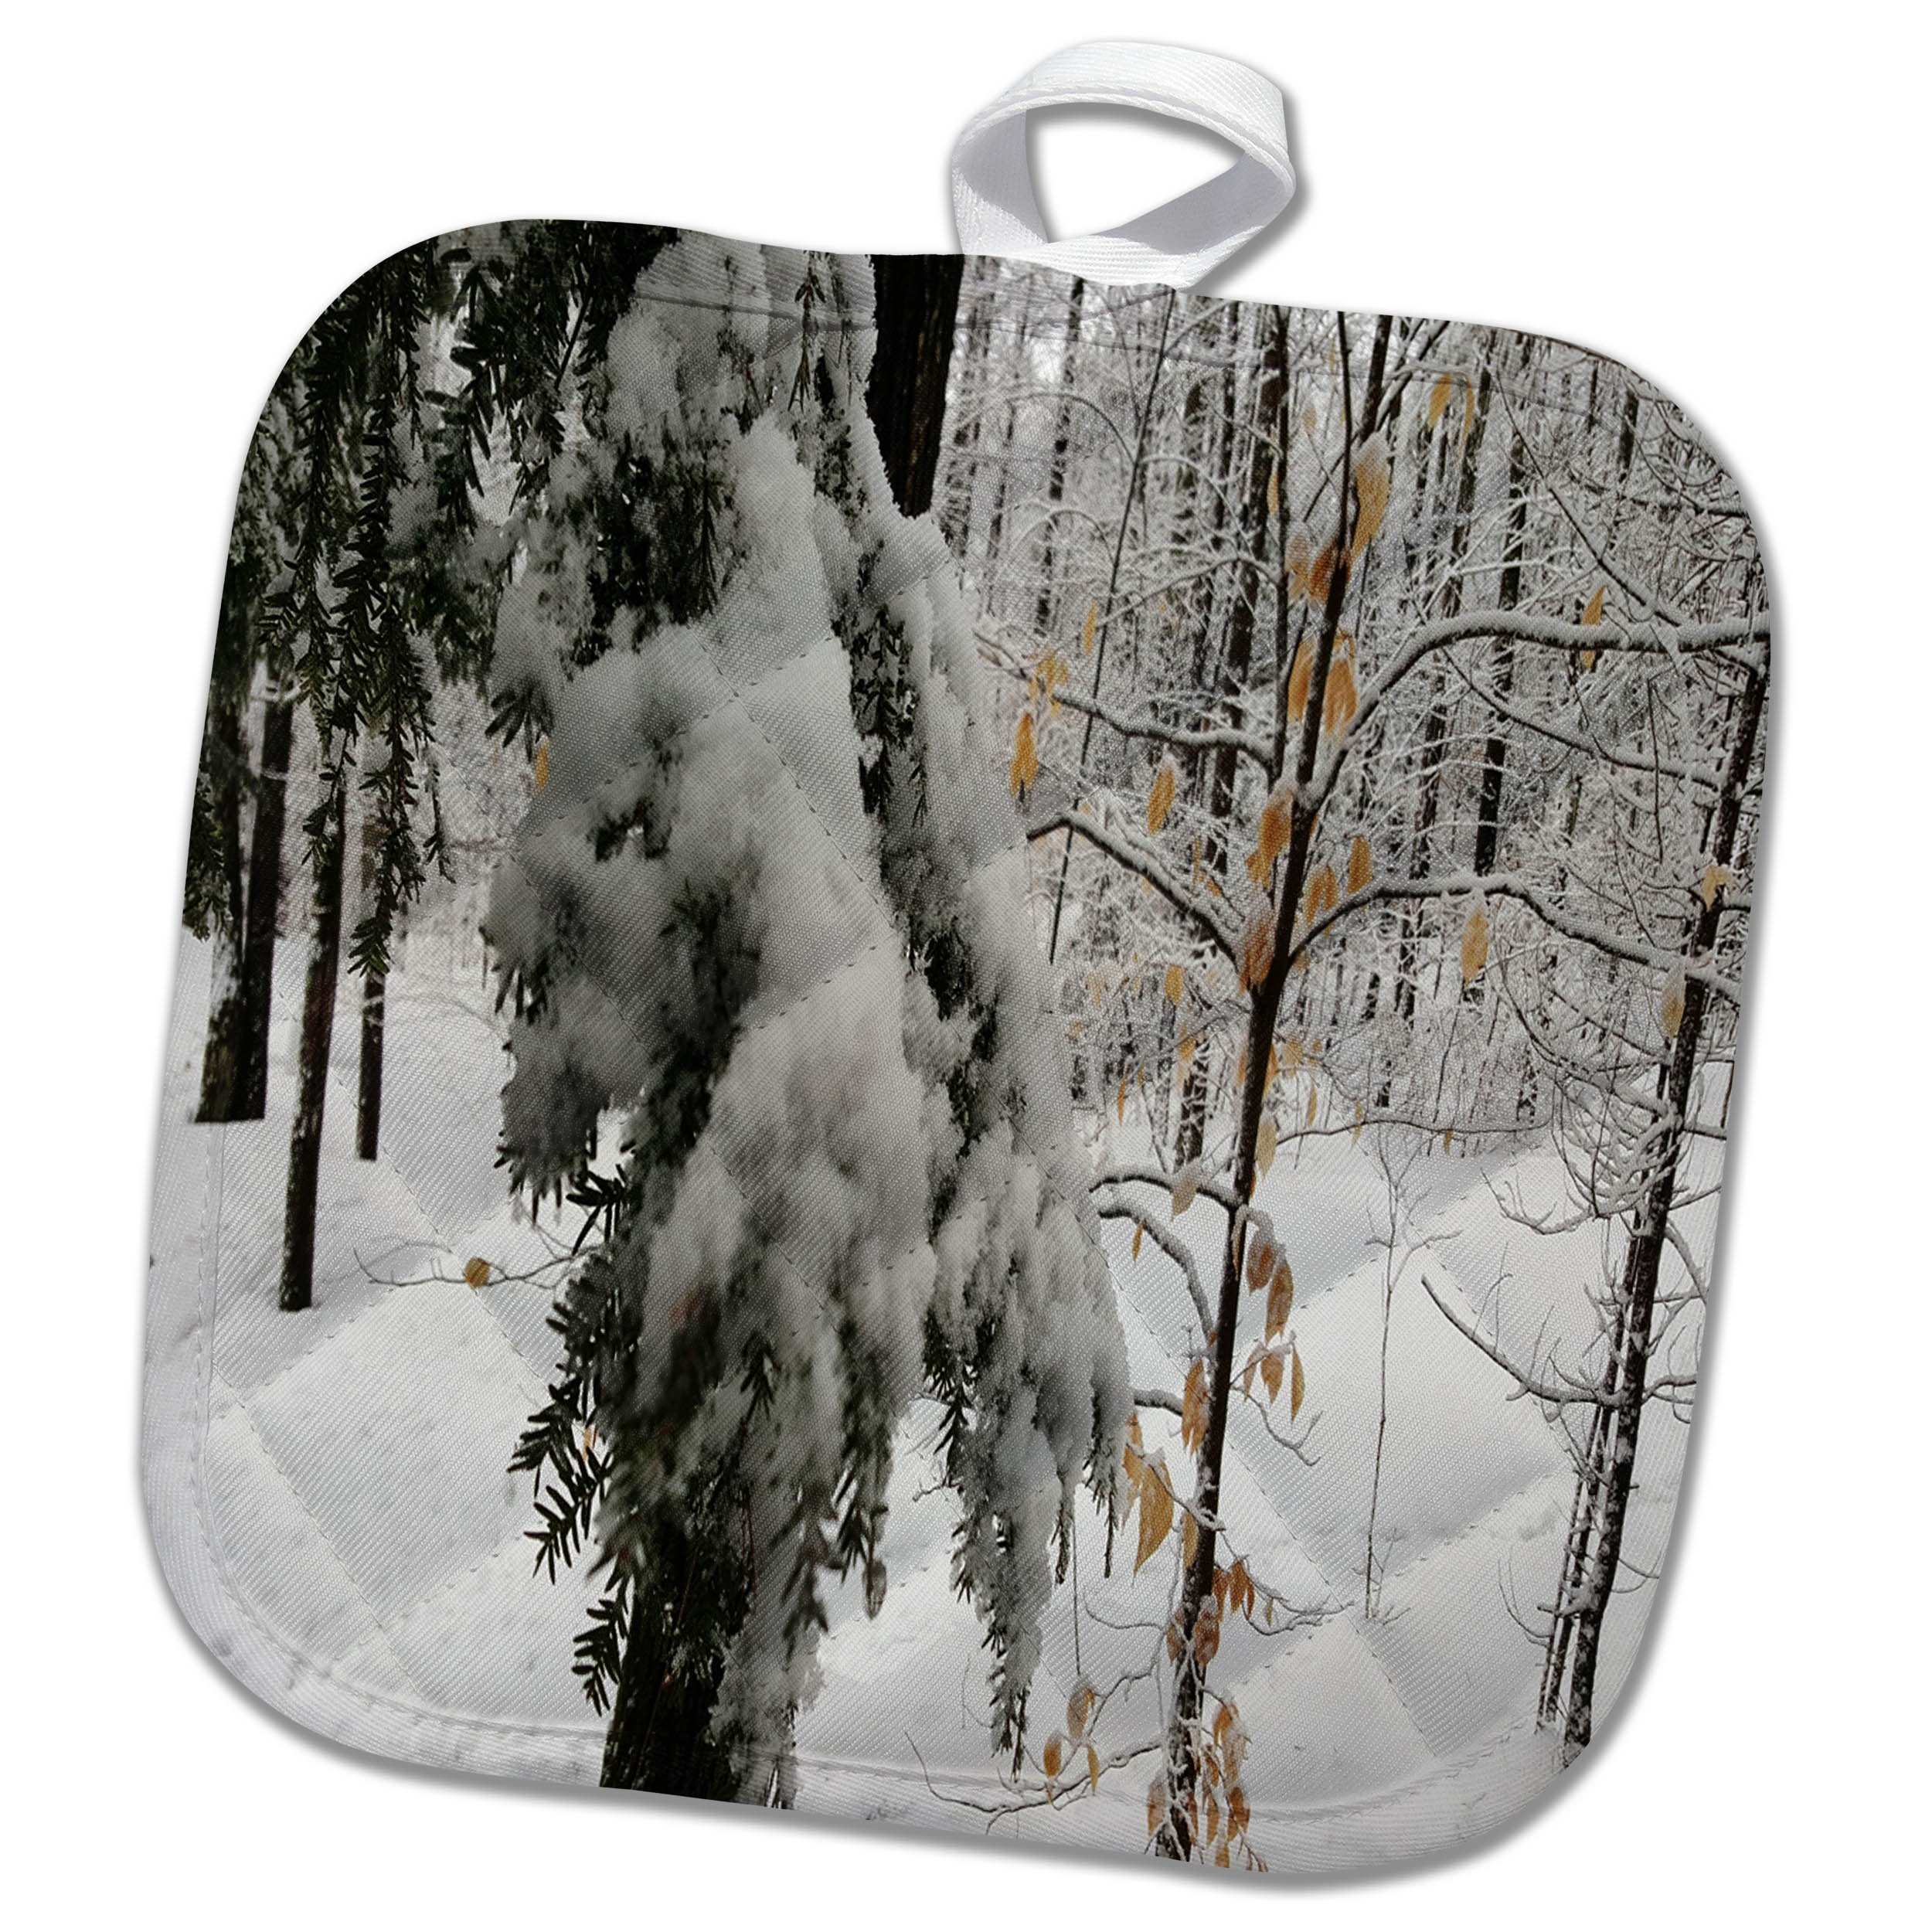 3dRose TDSwhite – Winter Seasonal Nature Photos - Winter Scenic Snowy Woods - 8x8 Potholder (phl_284960_1) by 3dRose (Image #1)